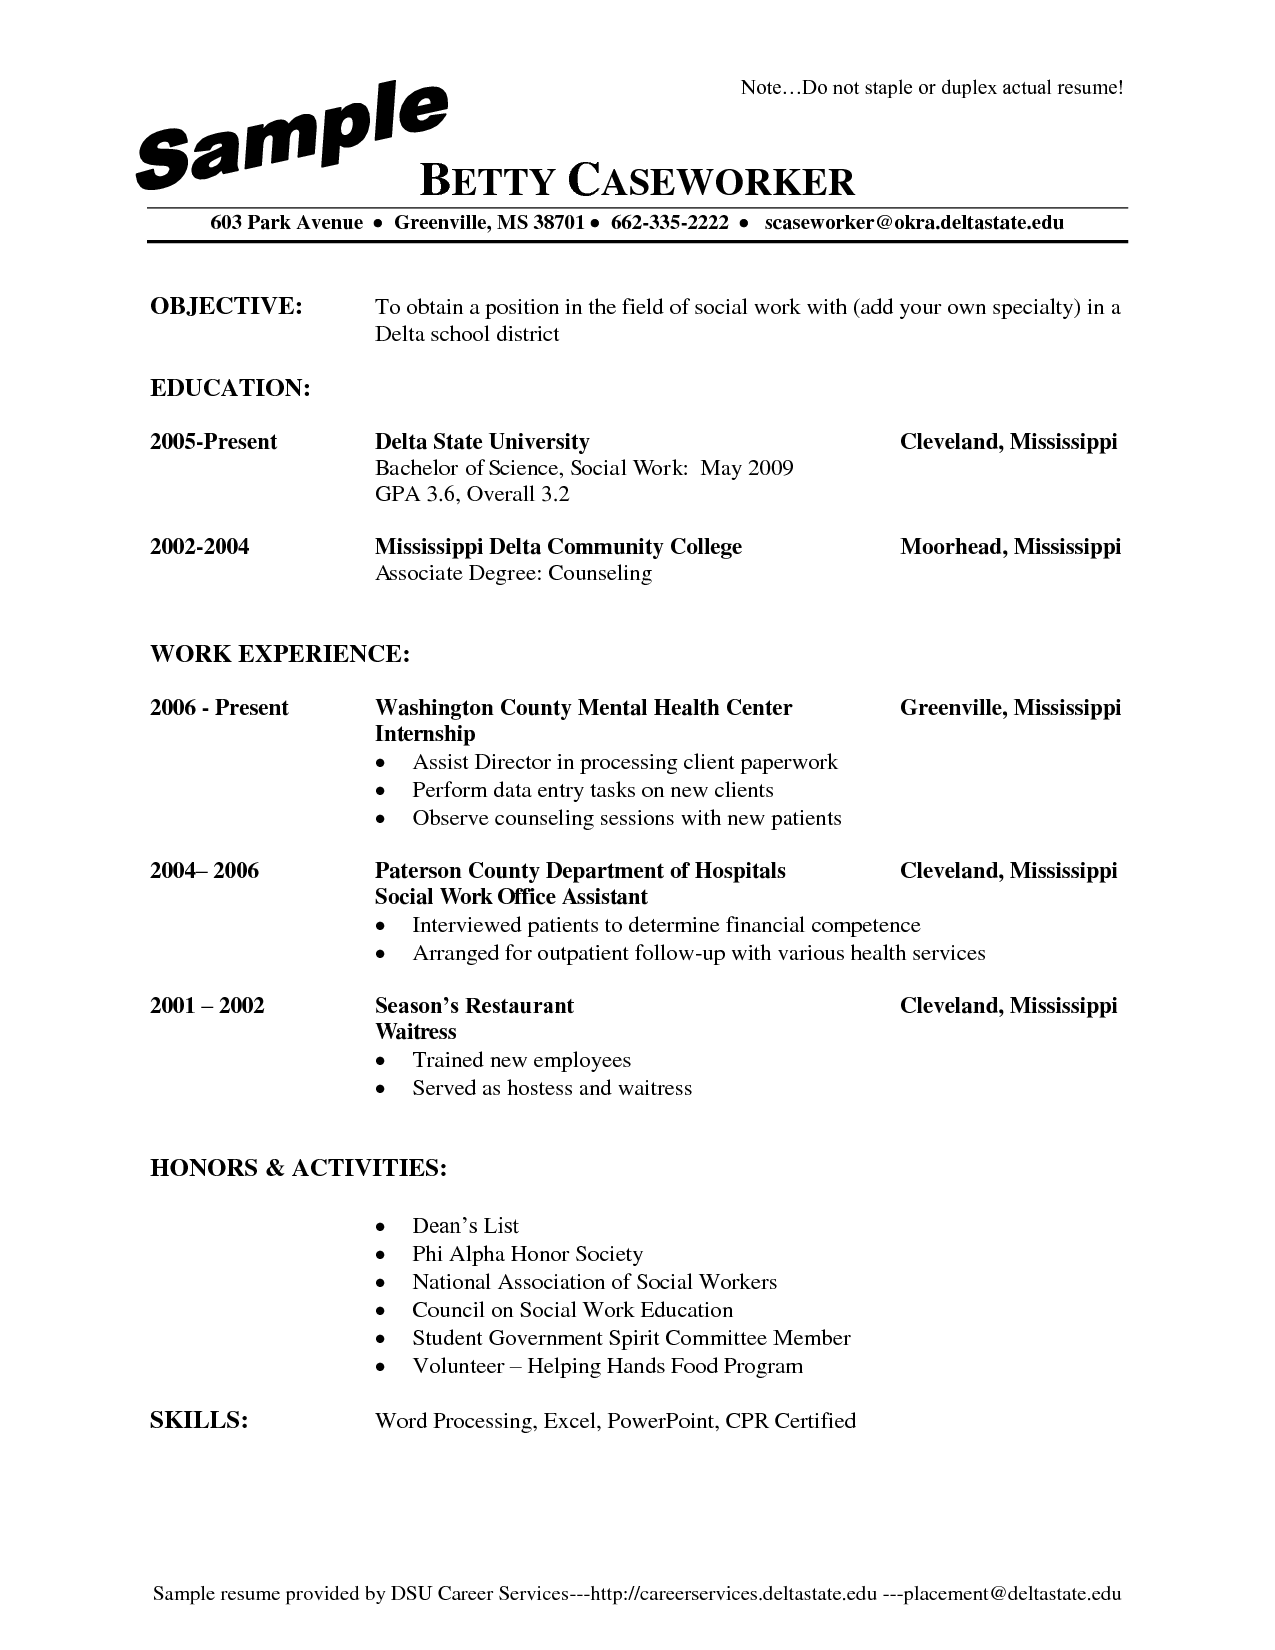 Pin by resumejob on Resume Job | Pinterest | Resume skills, Job ...